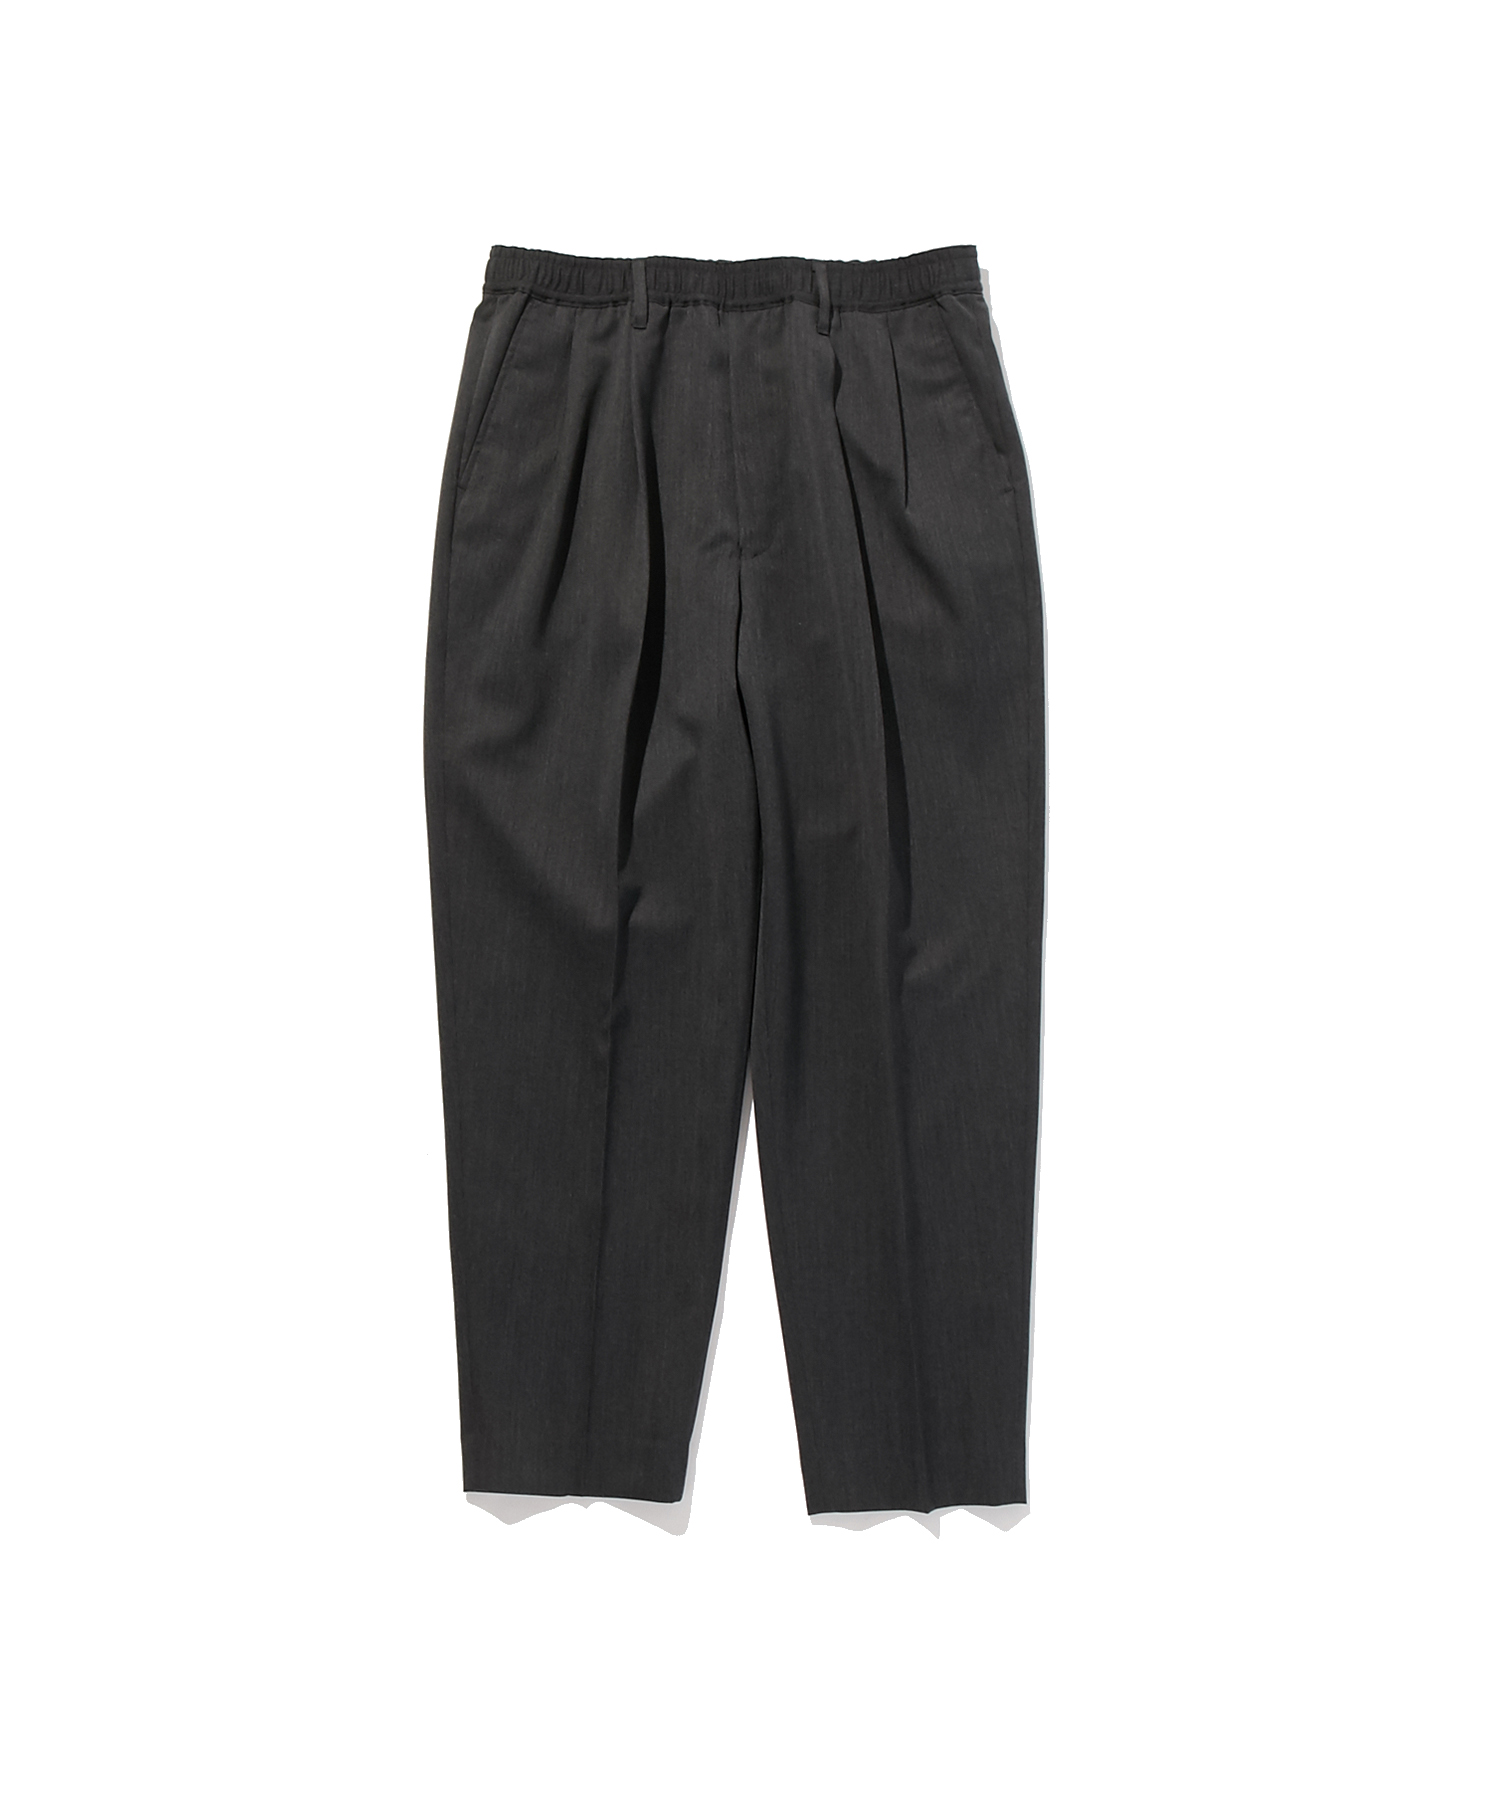 FALL2019 WIDE TAPERED EASY SLACKS